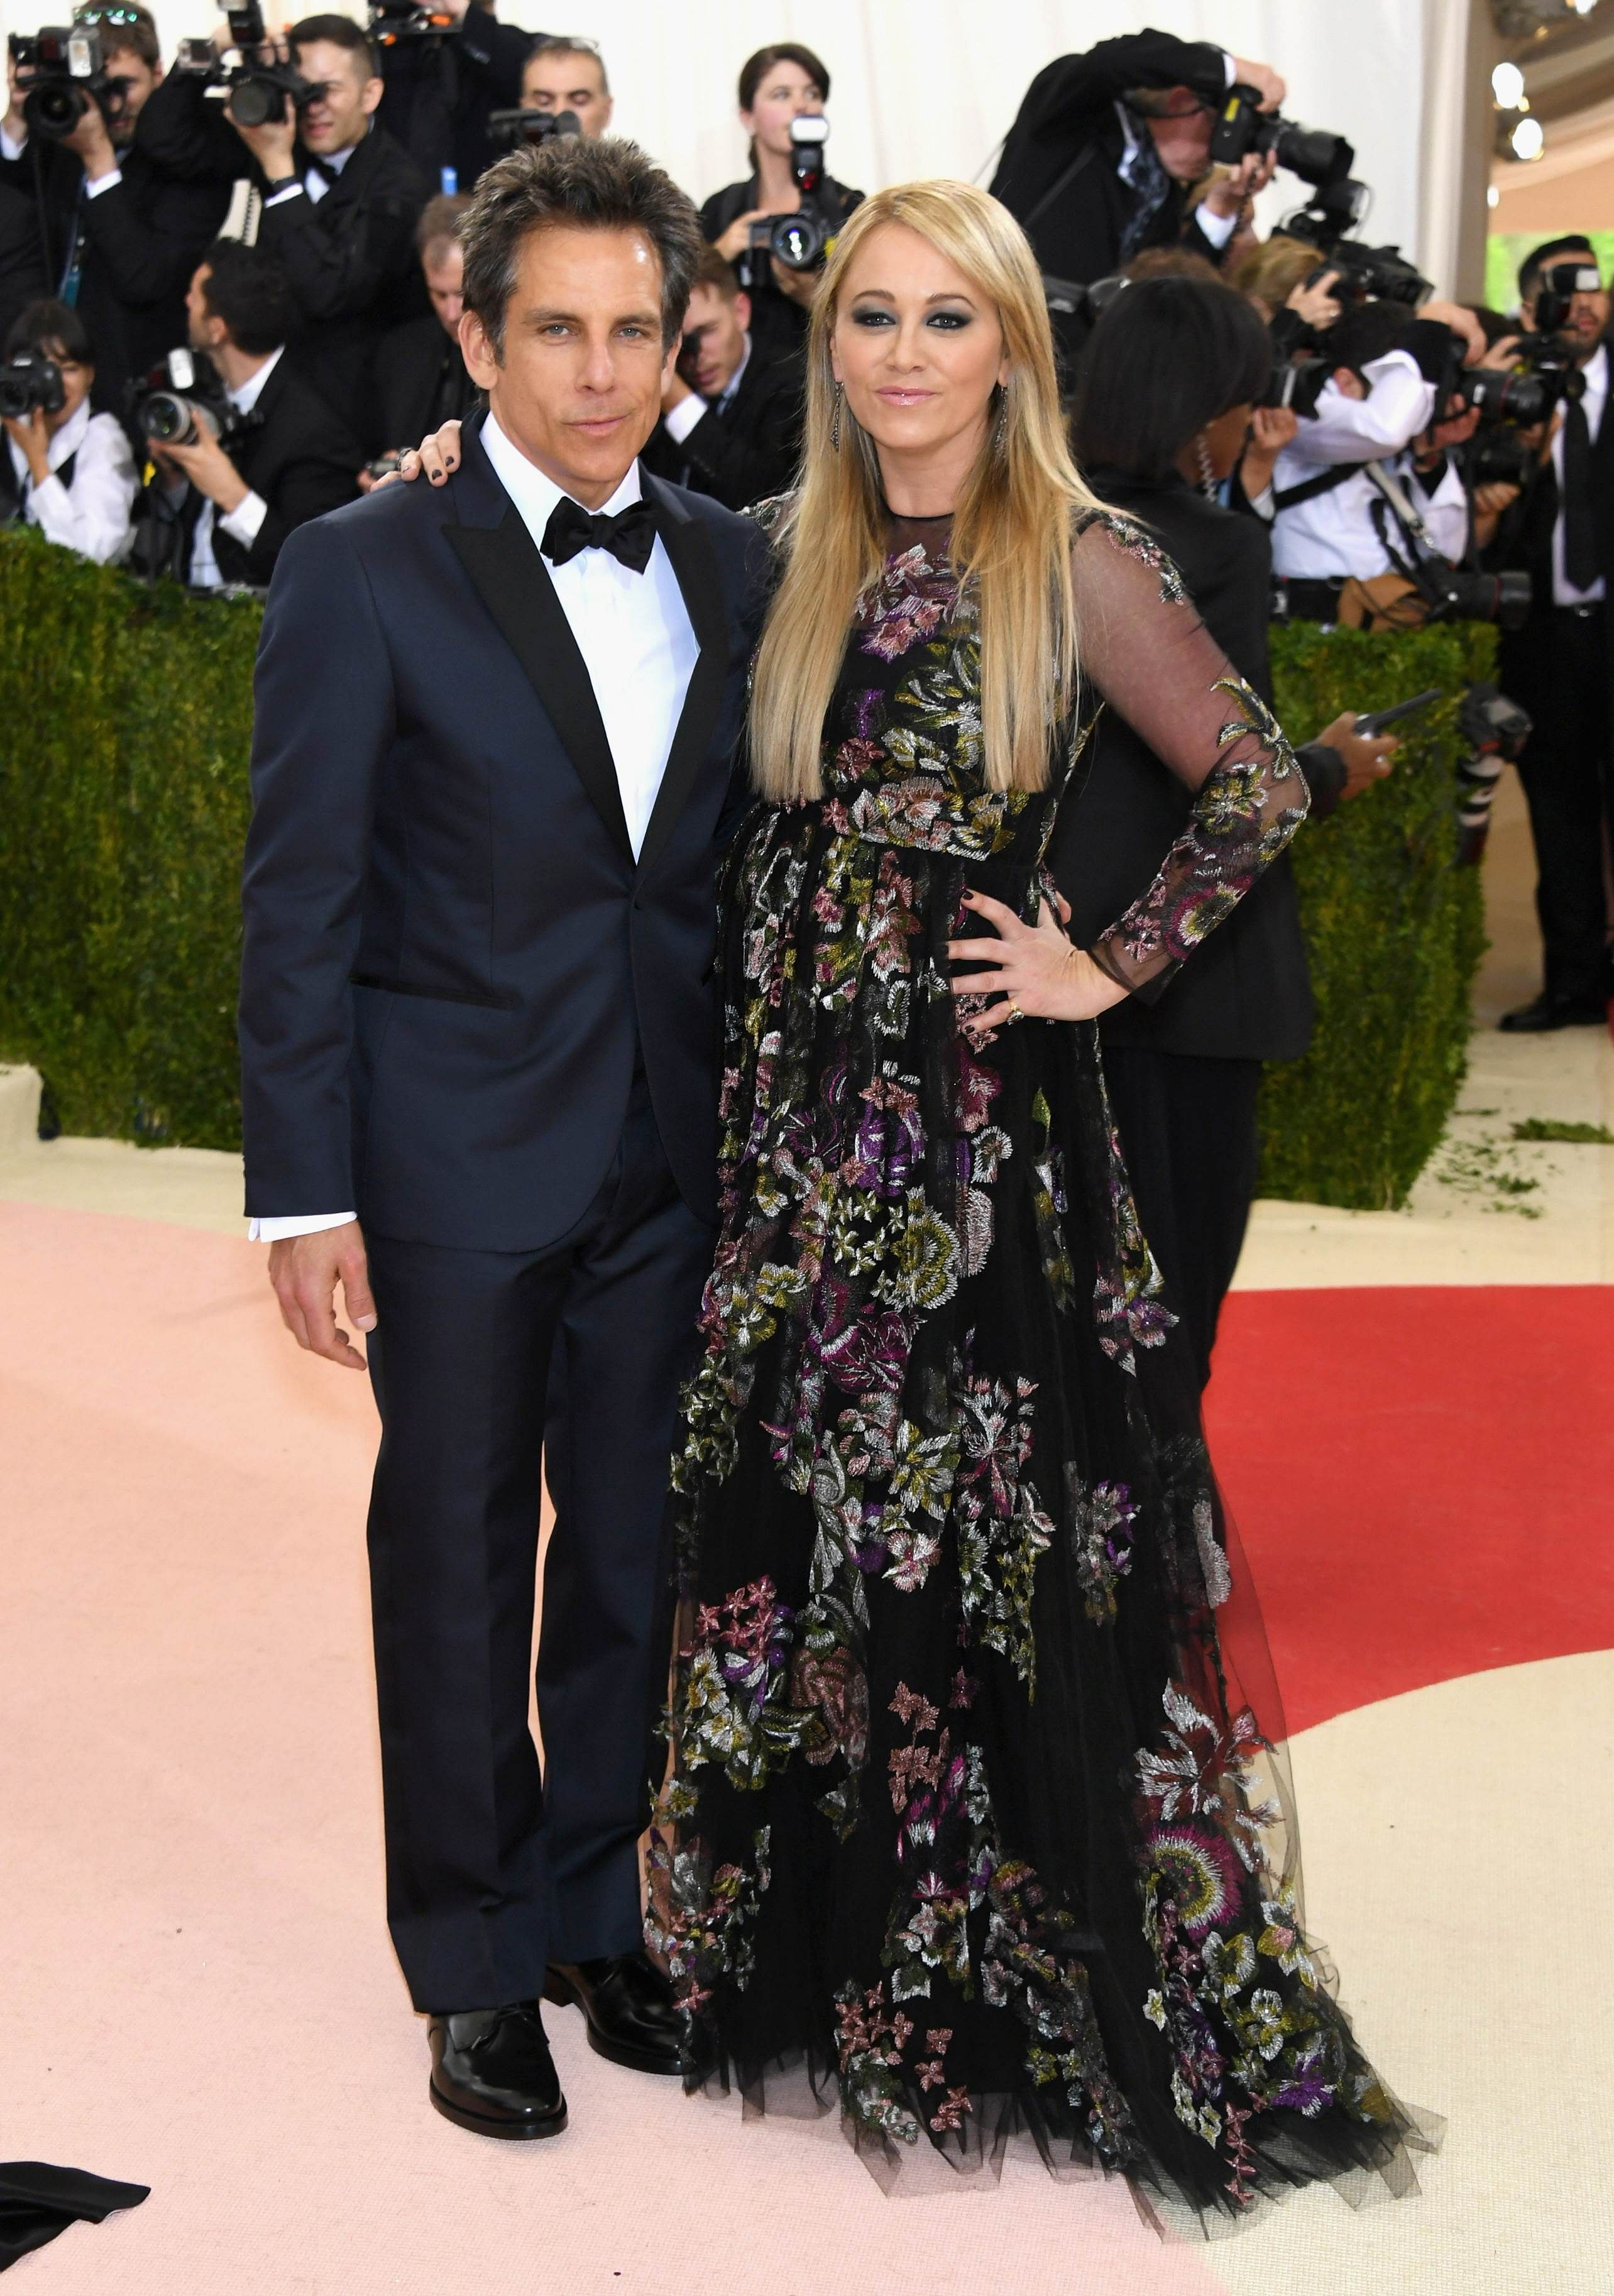 In Pictures: Red carpet arrivals at Met Gala 2016, Photos